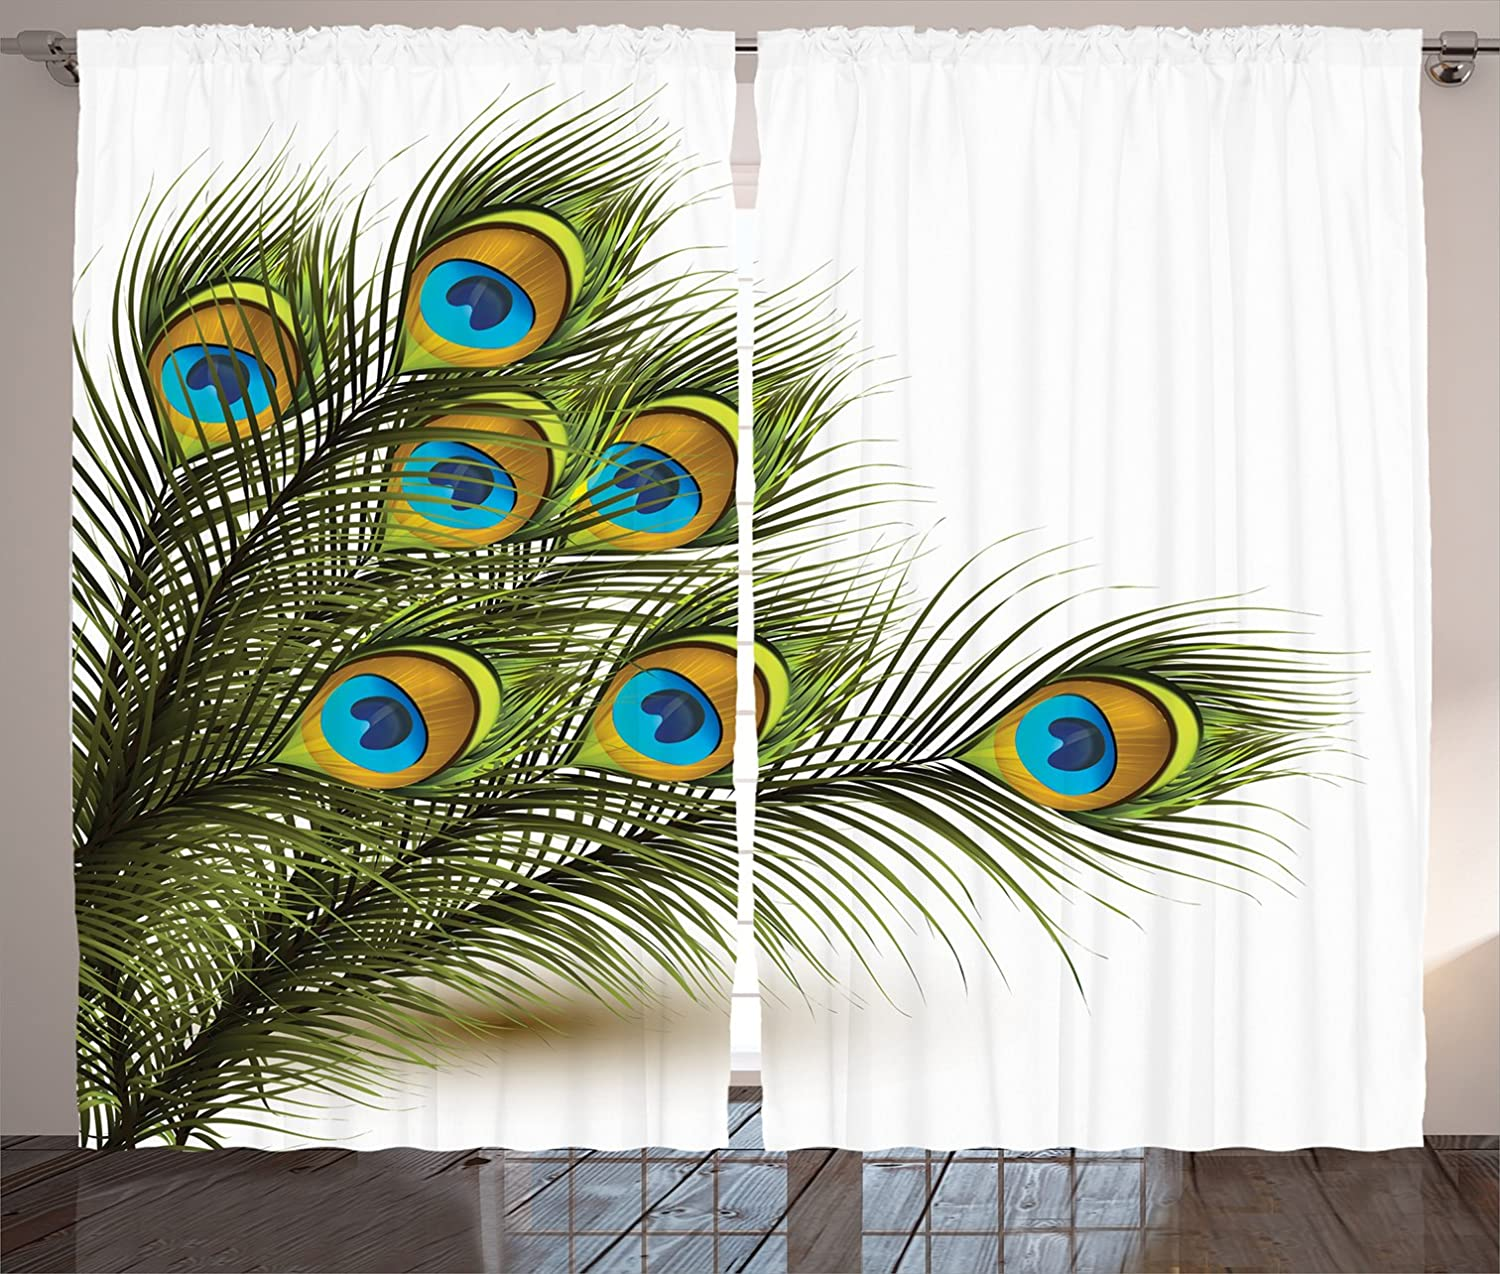 Bargain Large-scale sale Ambesonne Peacock Curtains Vivid Ferns Feathers Mystica